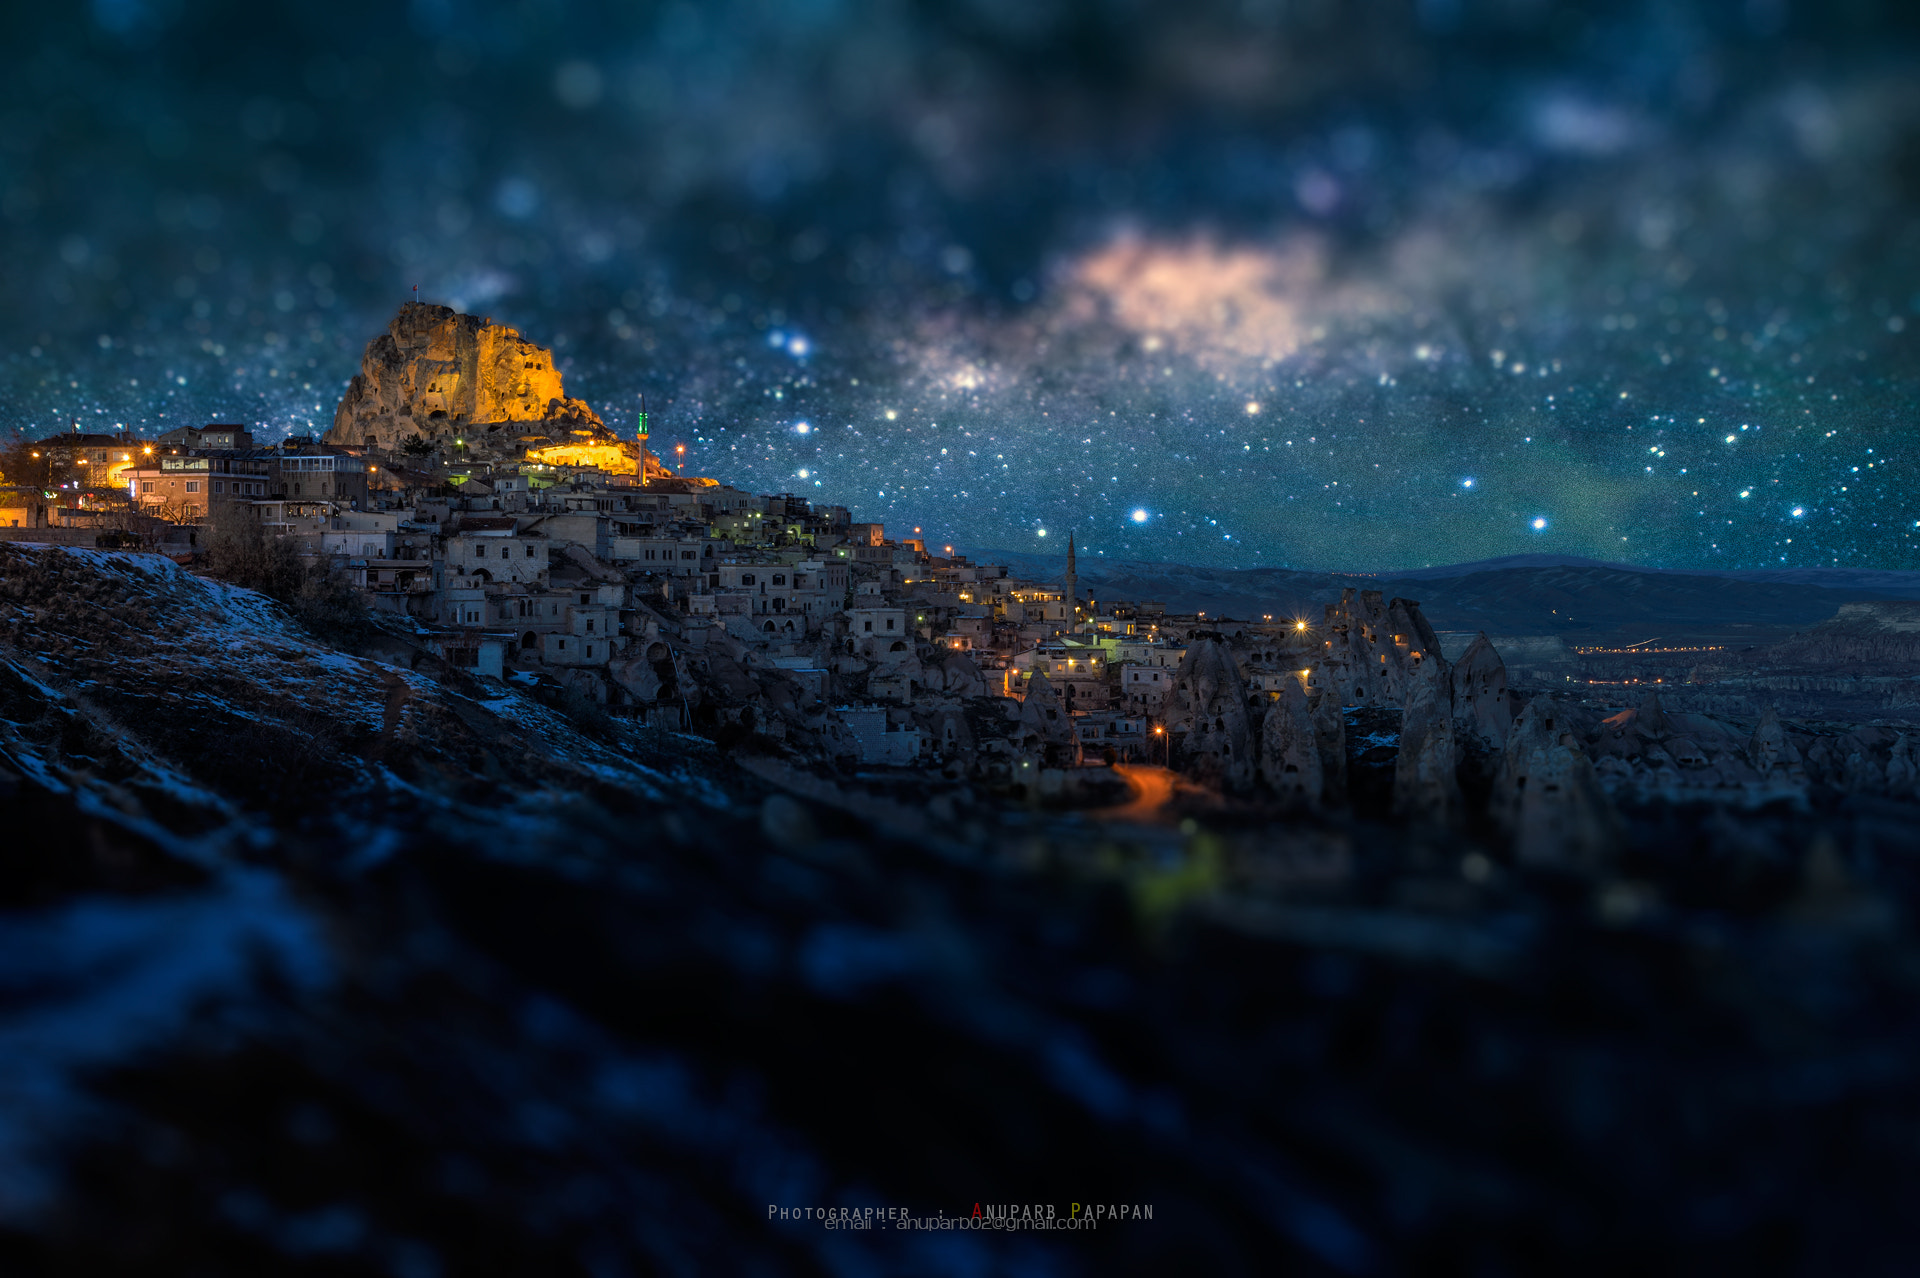 Photograph Stars and Bokeh by Anuparb Papapan on 500px